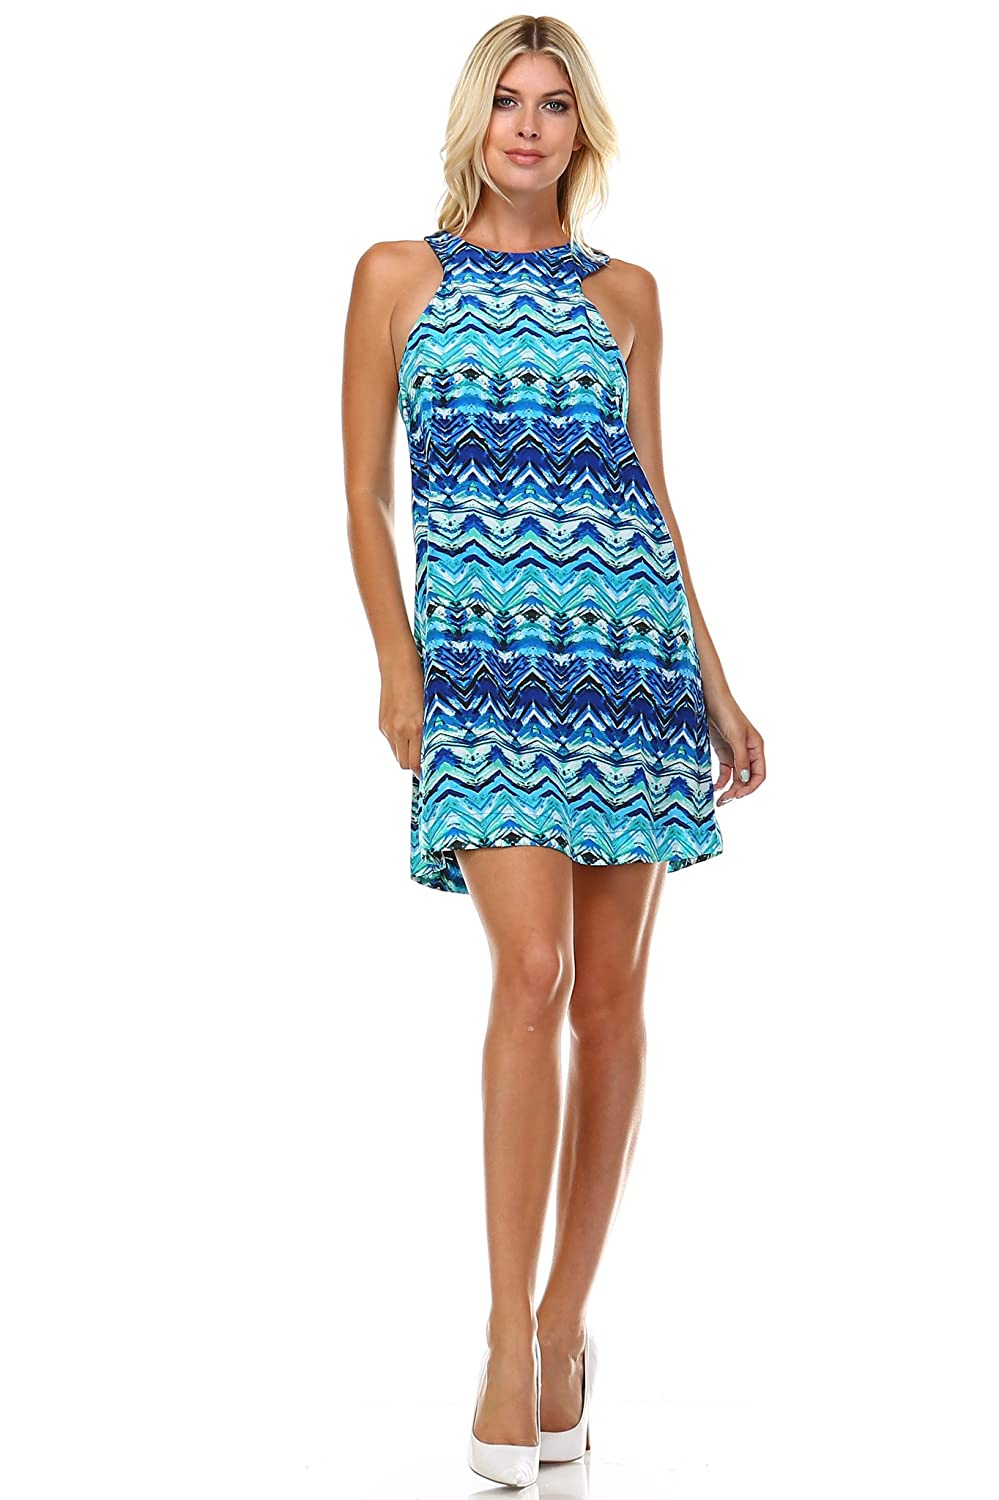 Marcelle Margaux High Neck Cut-Out Sleeveless Dress